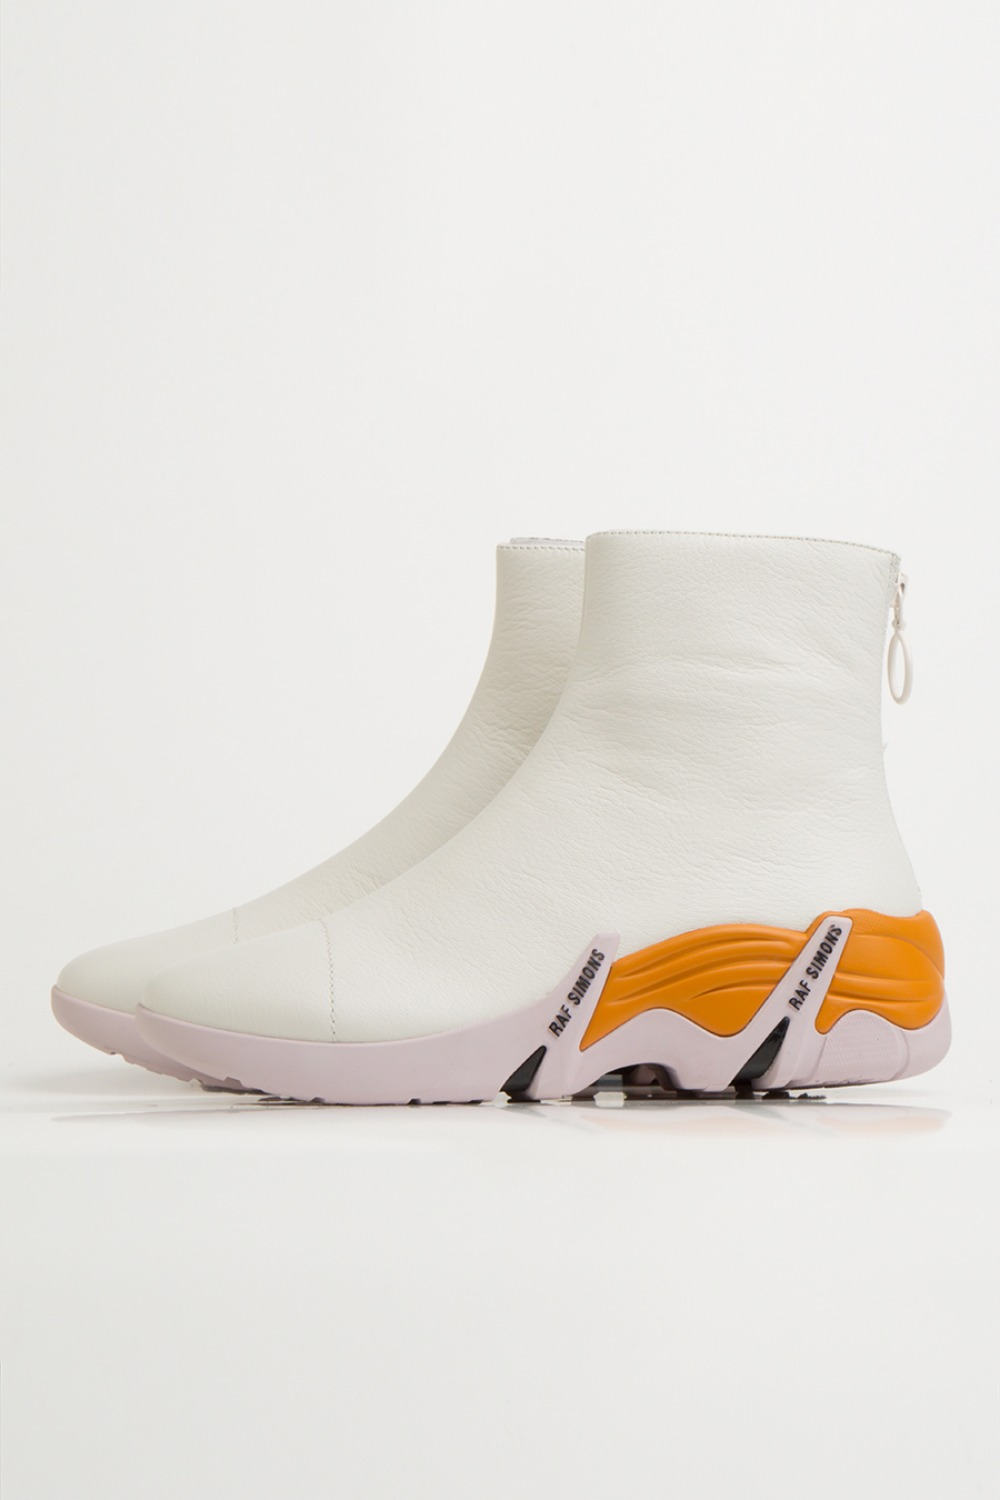 CYLON 202-986 LEATHER WHITE/DARK ORANGE/PINK